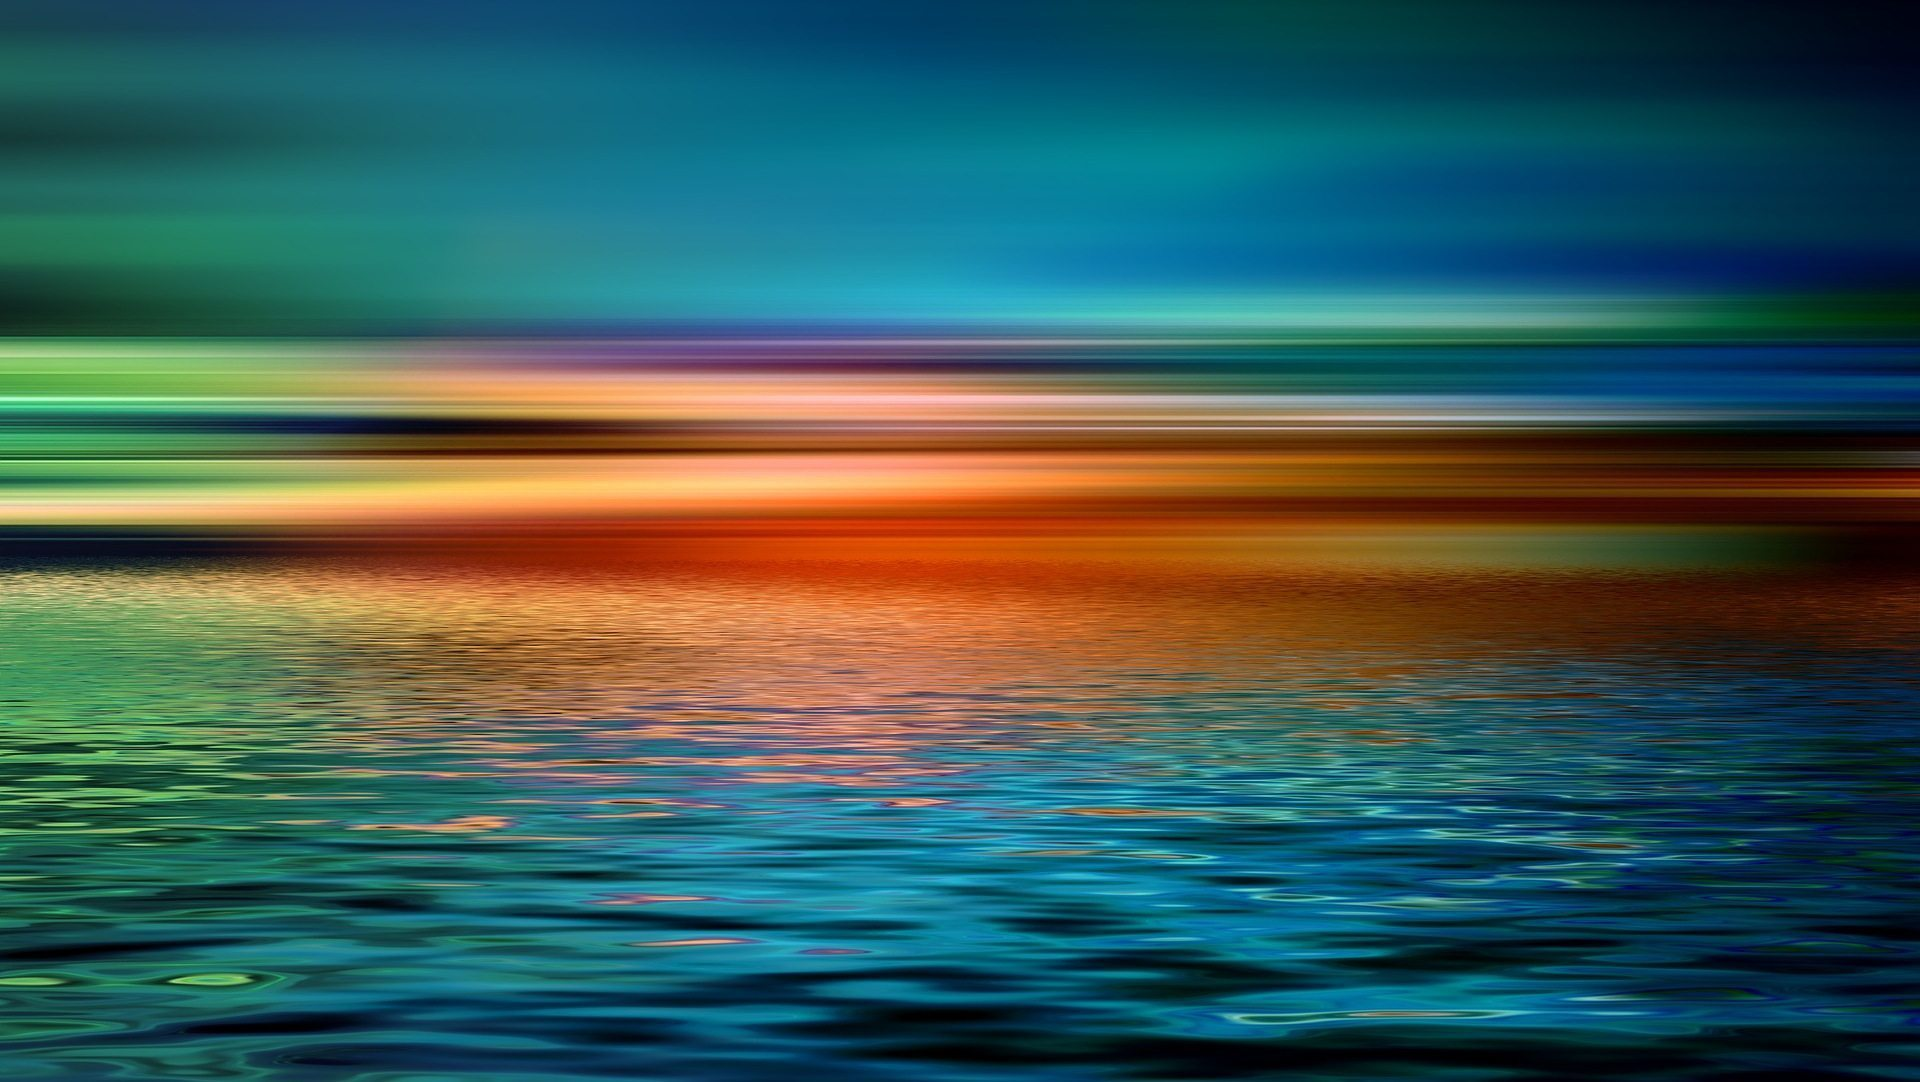 Image: Horizon over a still ocean